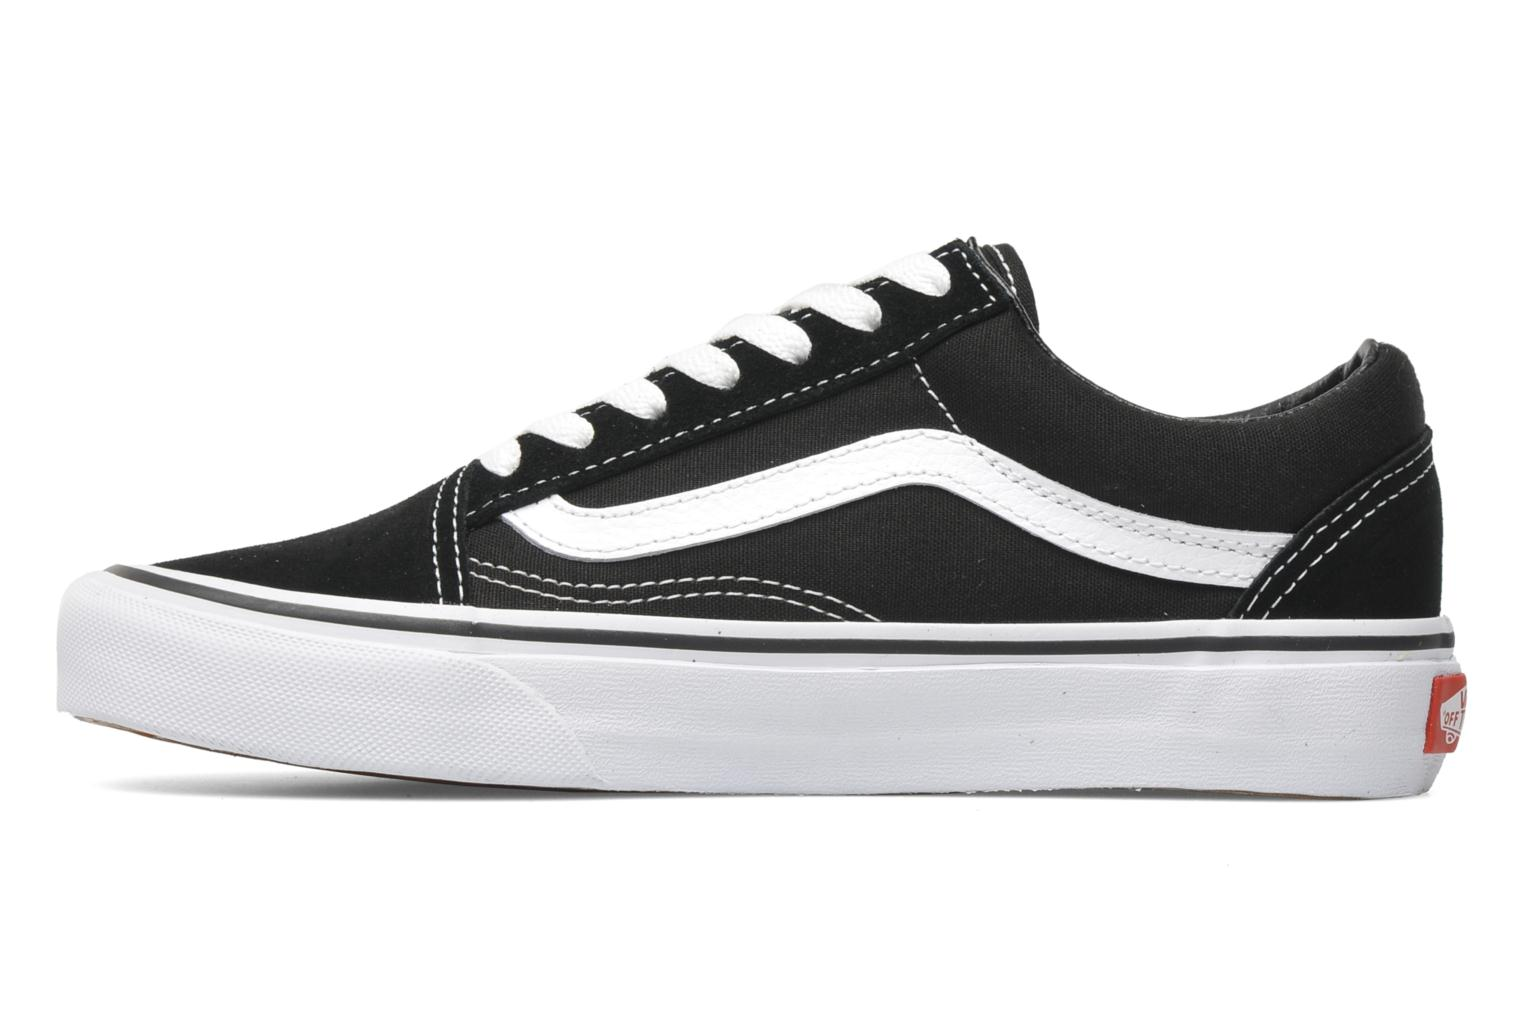 vans old skool w trainers in black at 164796. Black Bedroom Furniture Sets. Home Design Ideas